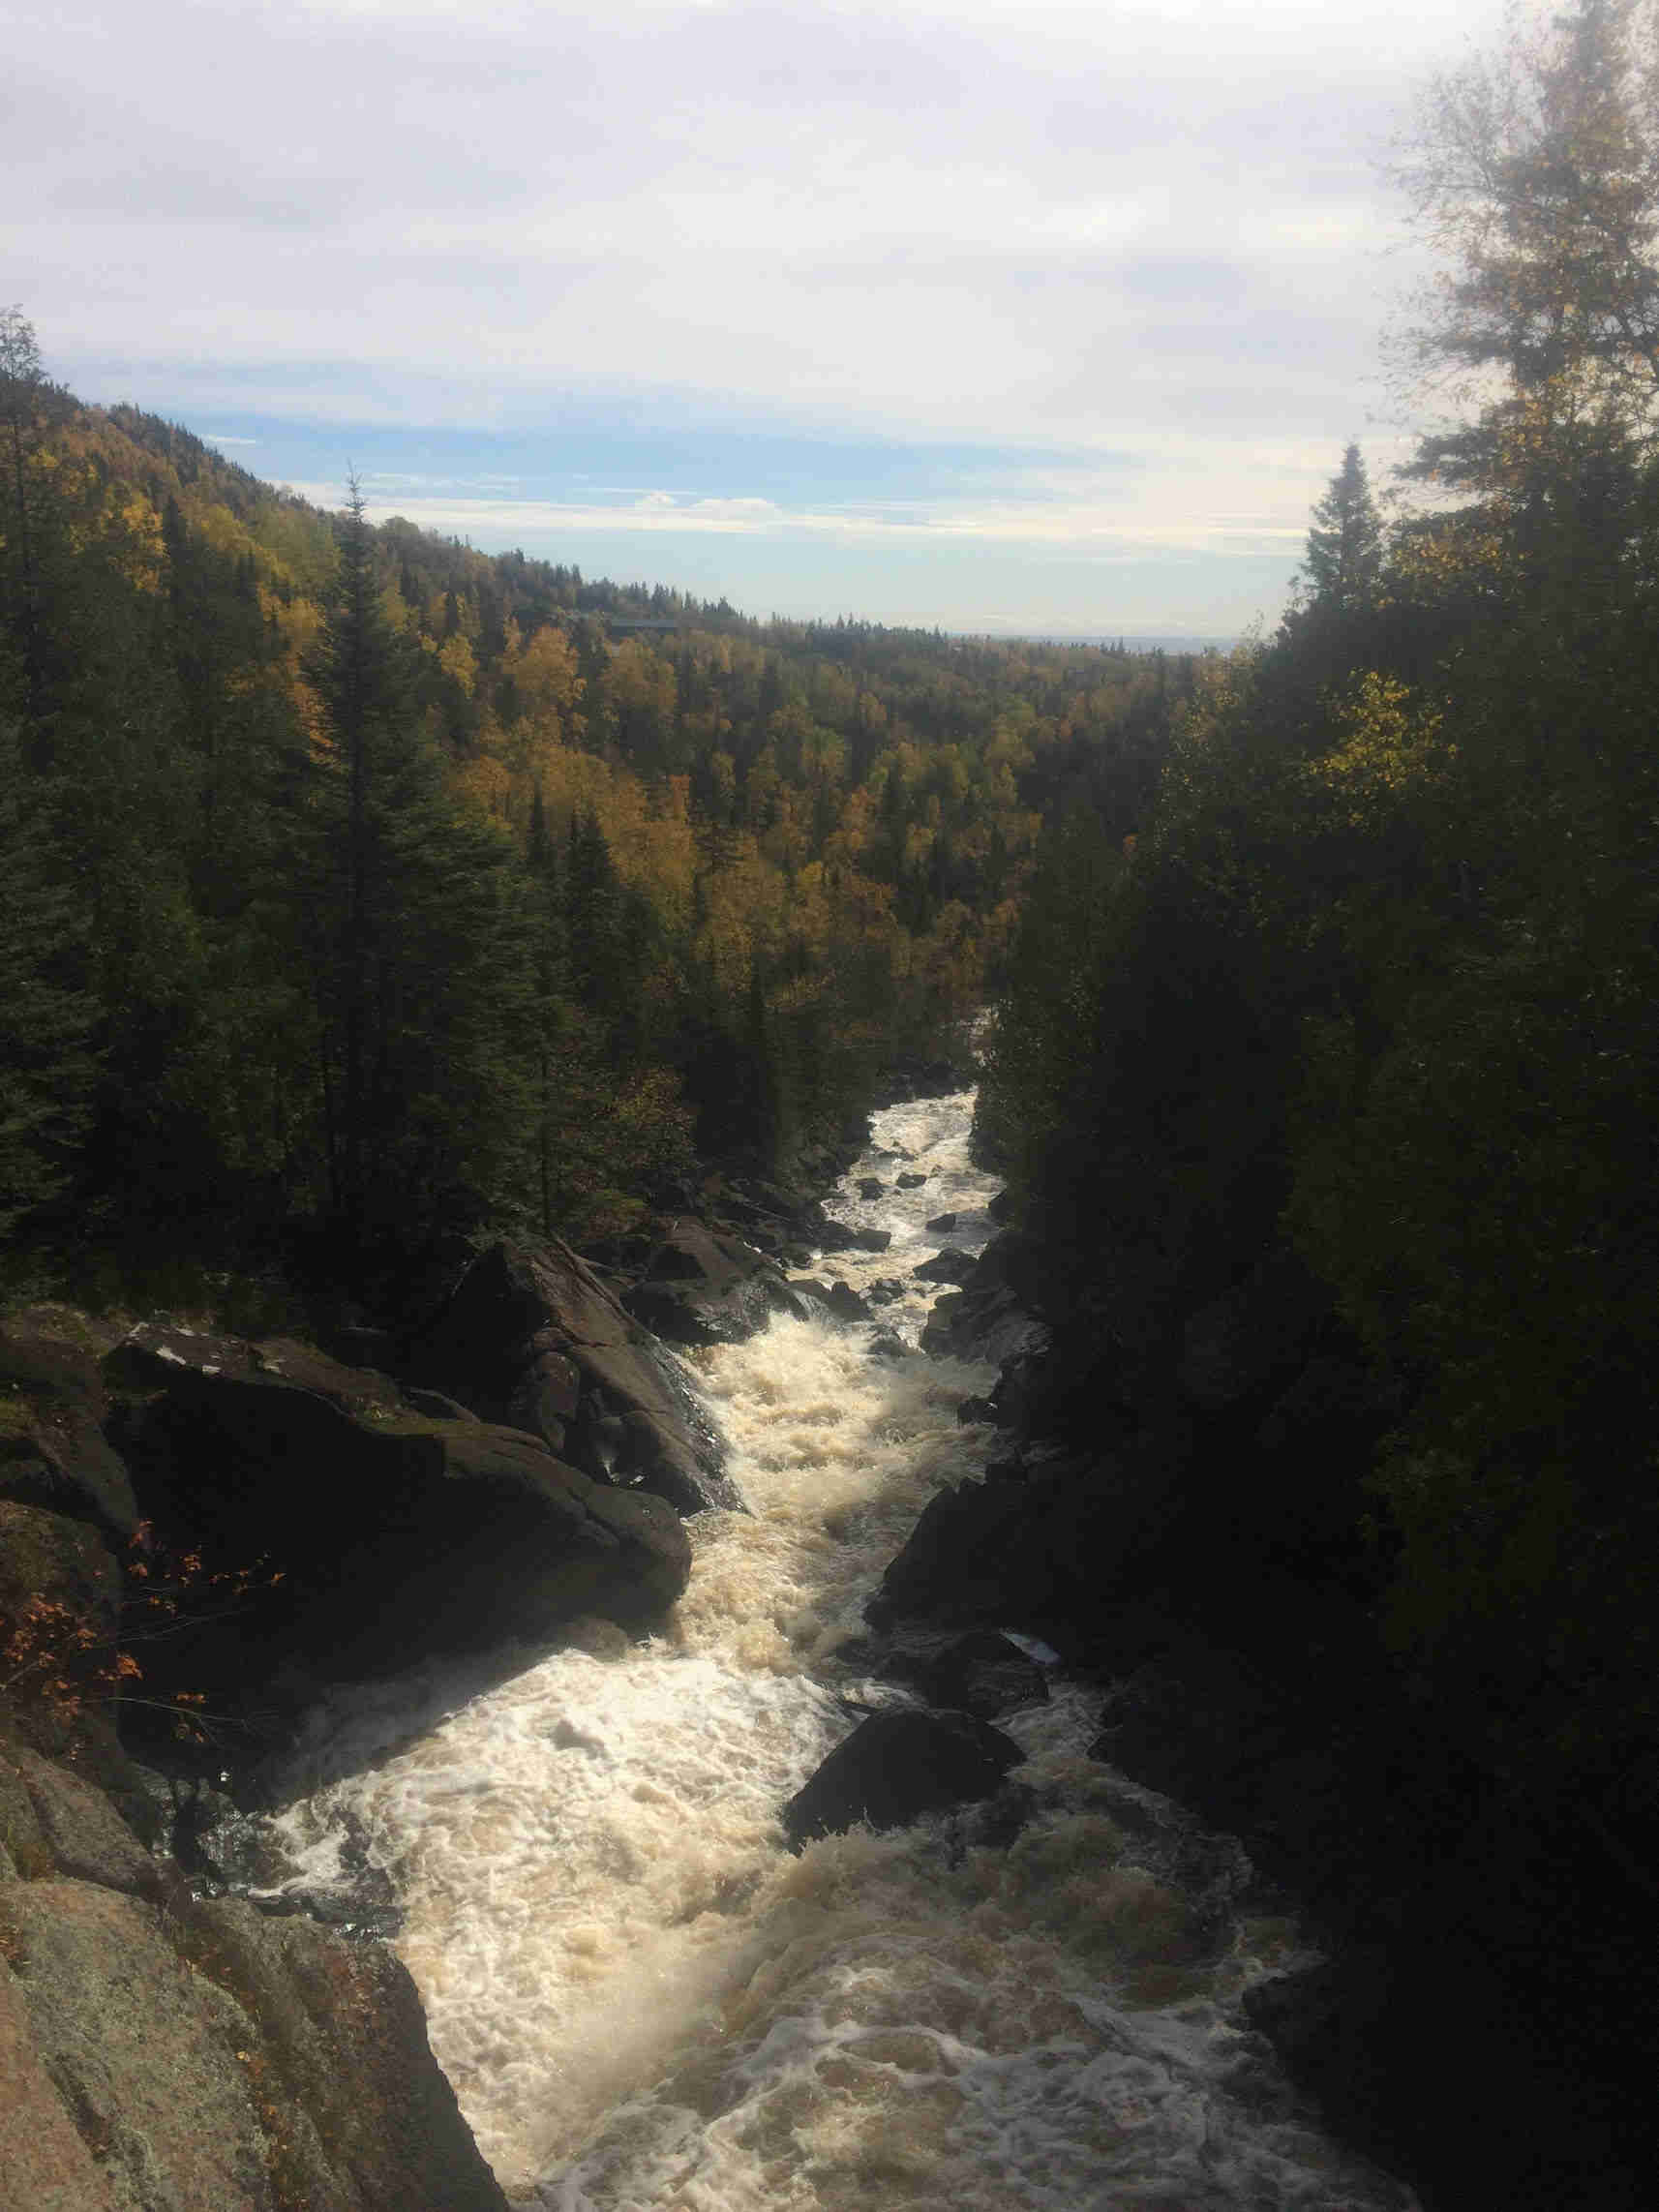 A raging river flowing down a gorge in the Superior National Forest